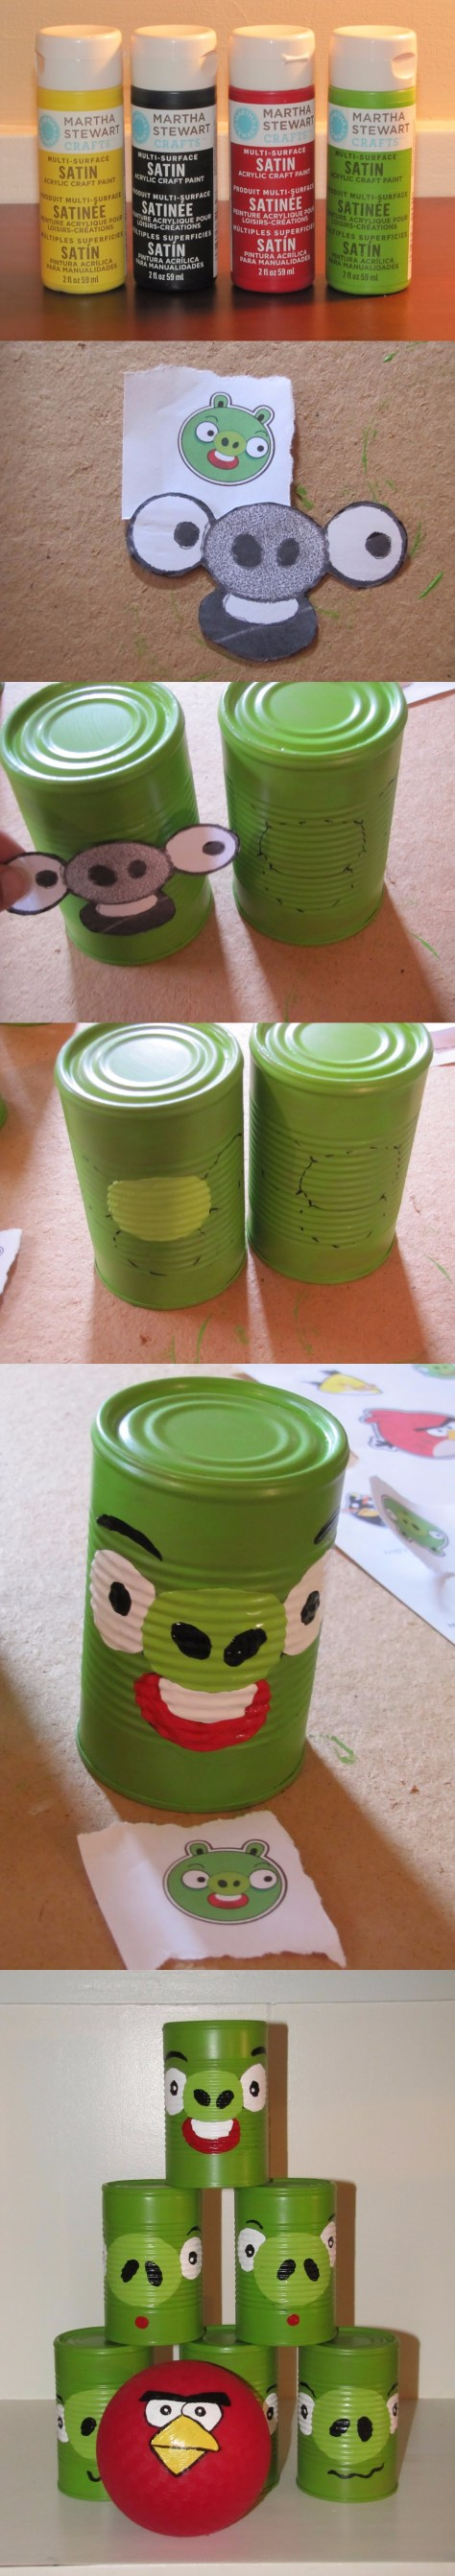 DIY Angry Birds Can Toss Game